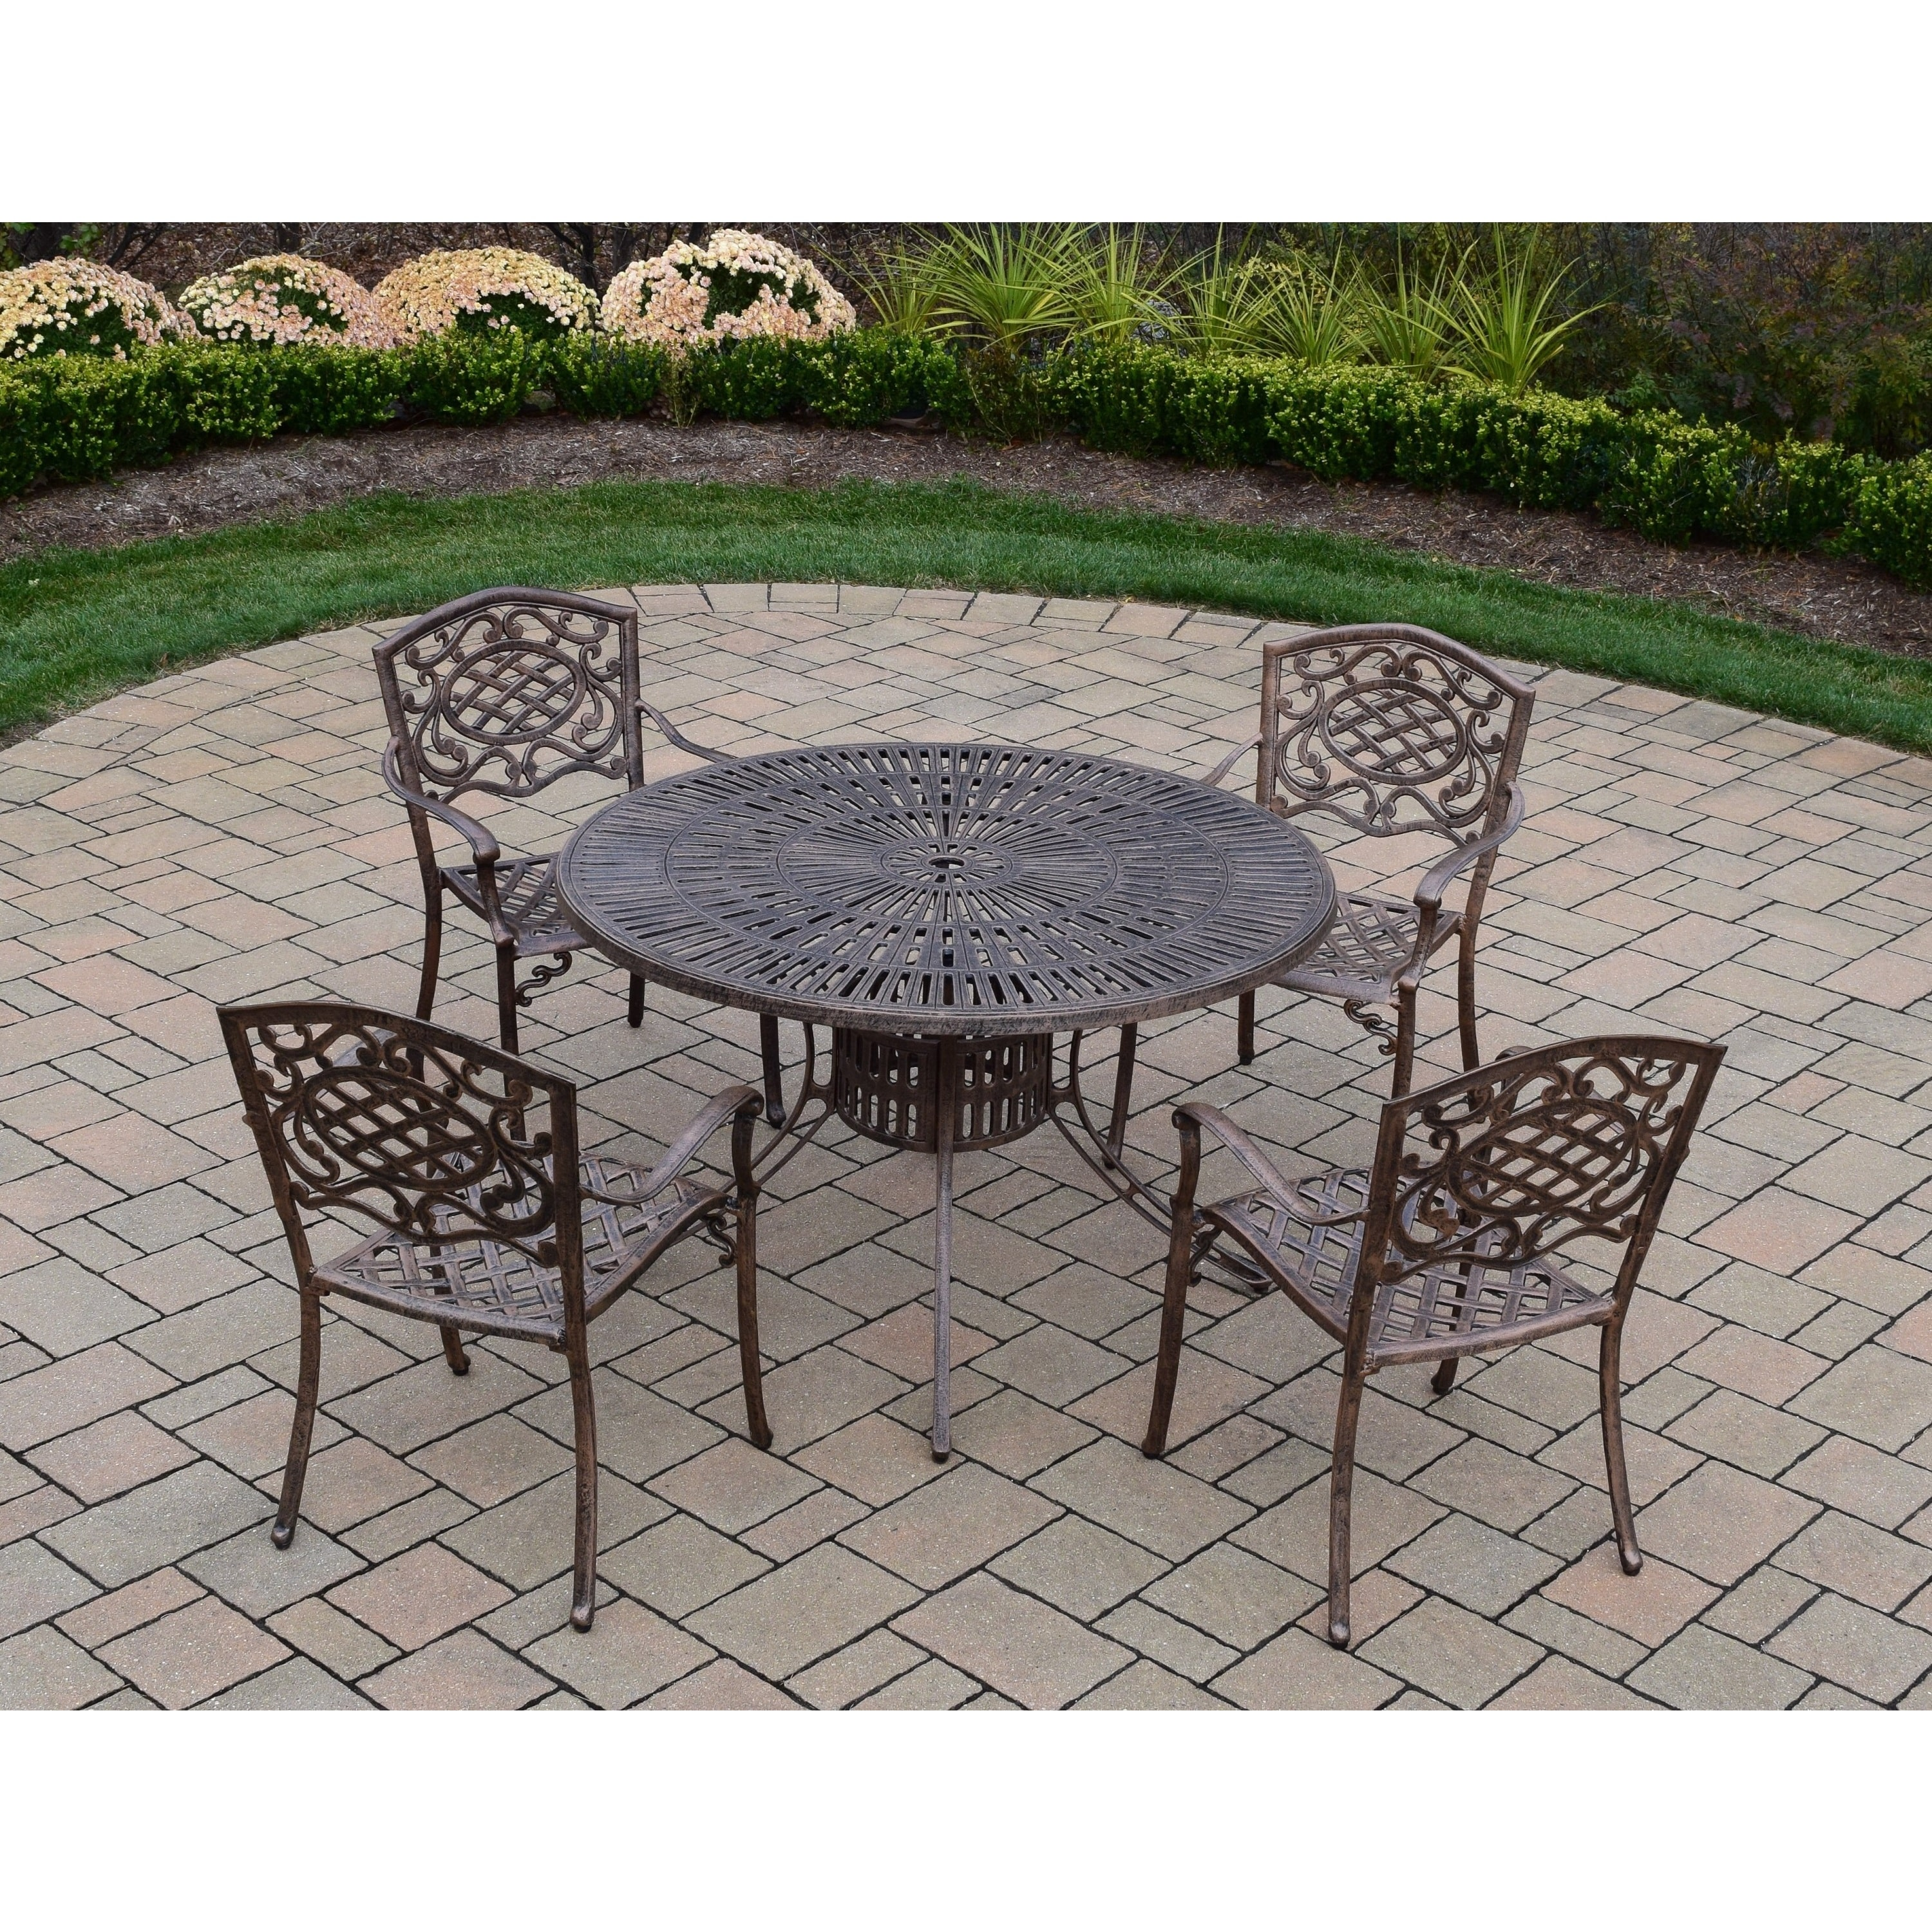 Oakland Living Corporation Cast Aluminum 5-piece Dining Set, with 48-inch Table, and 4 Chairs